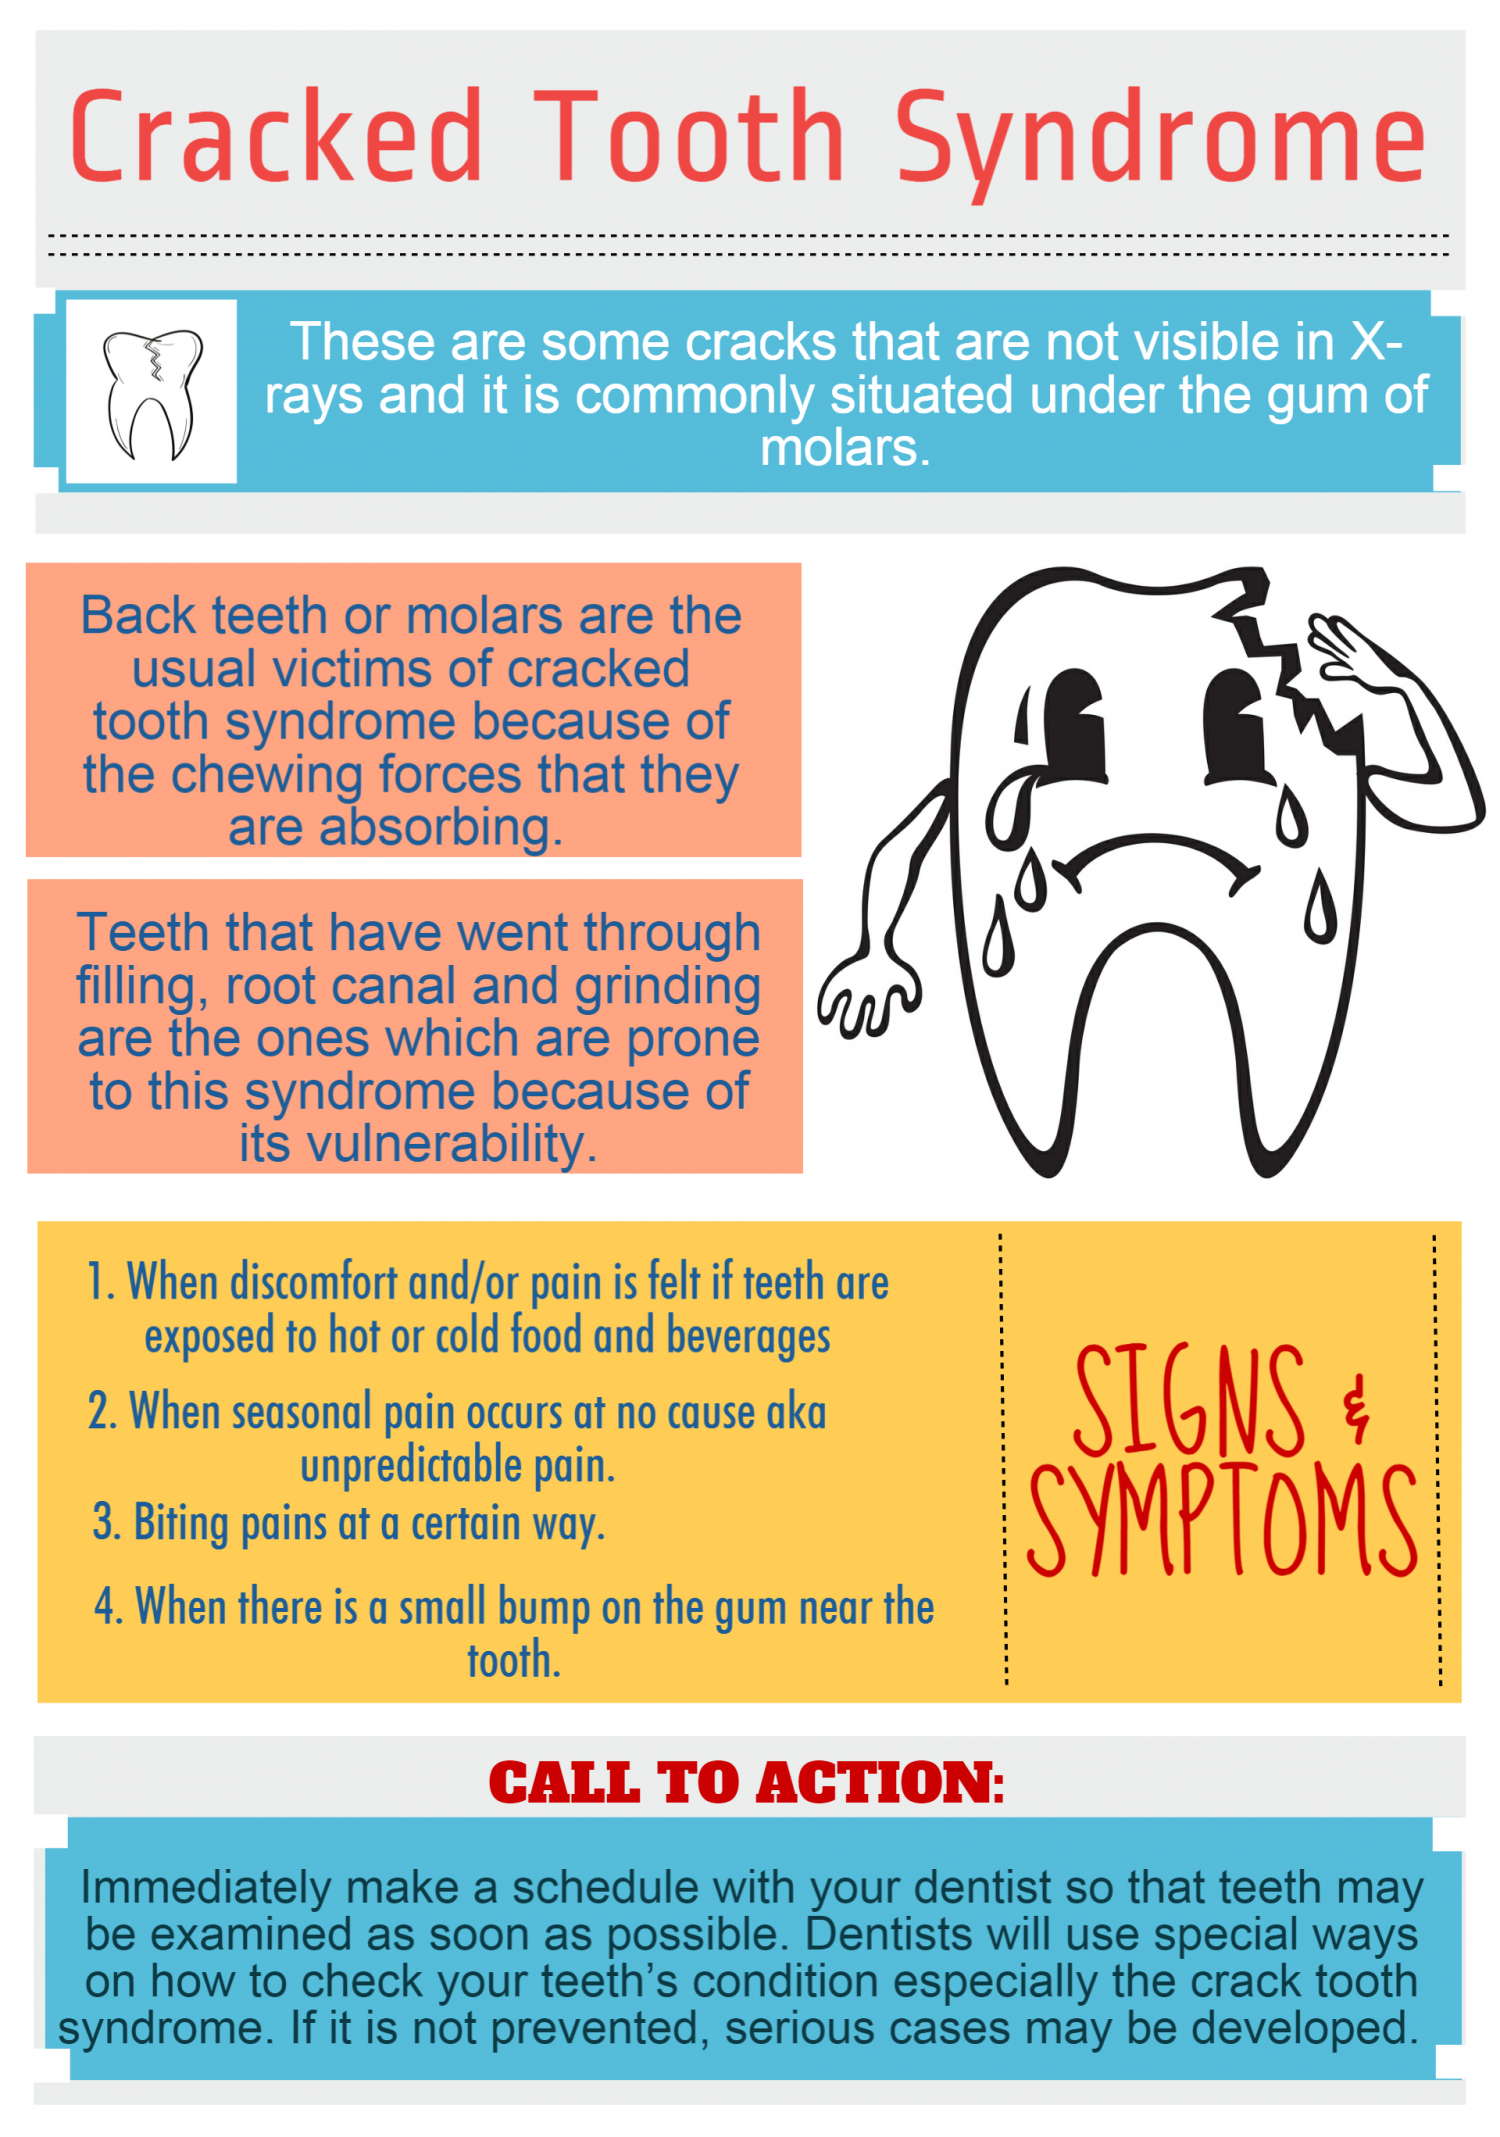 Cracked Tooth Syndrome Infographic